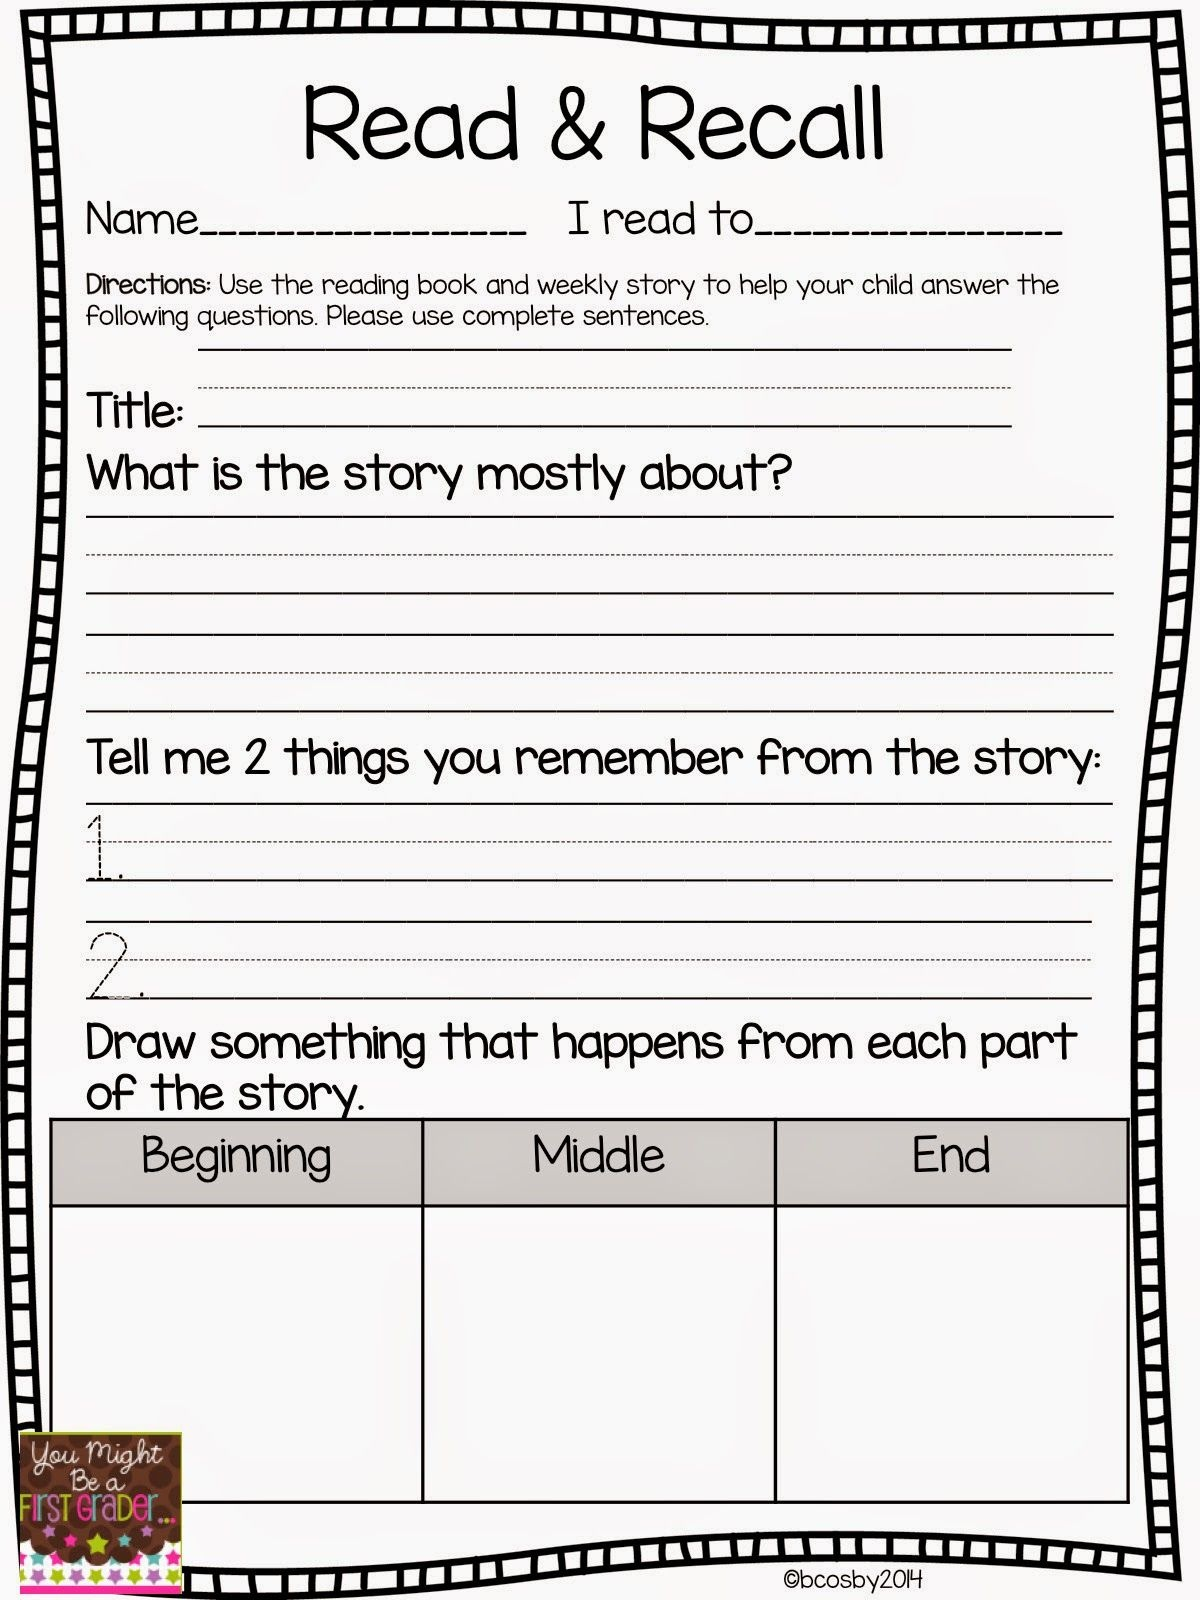 Free Printable Reading Games For 2nd Graders